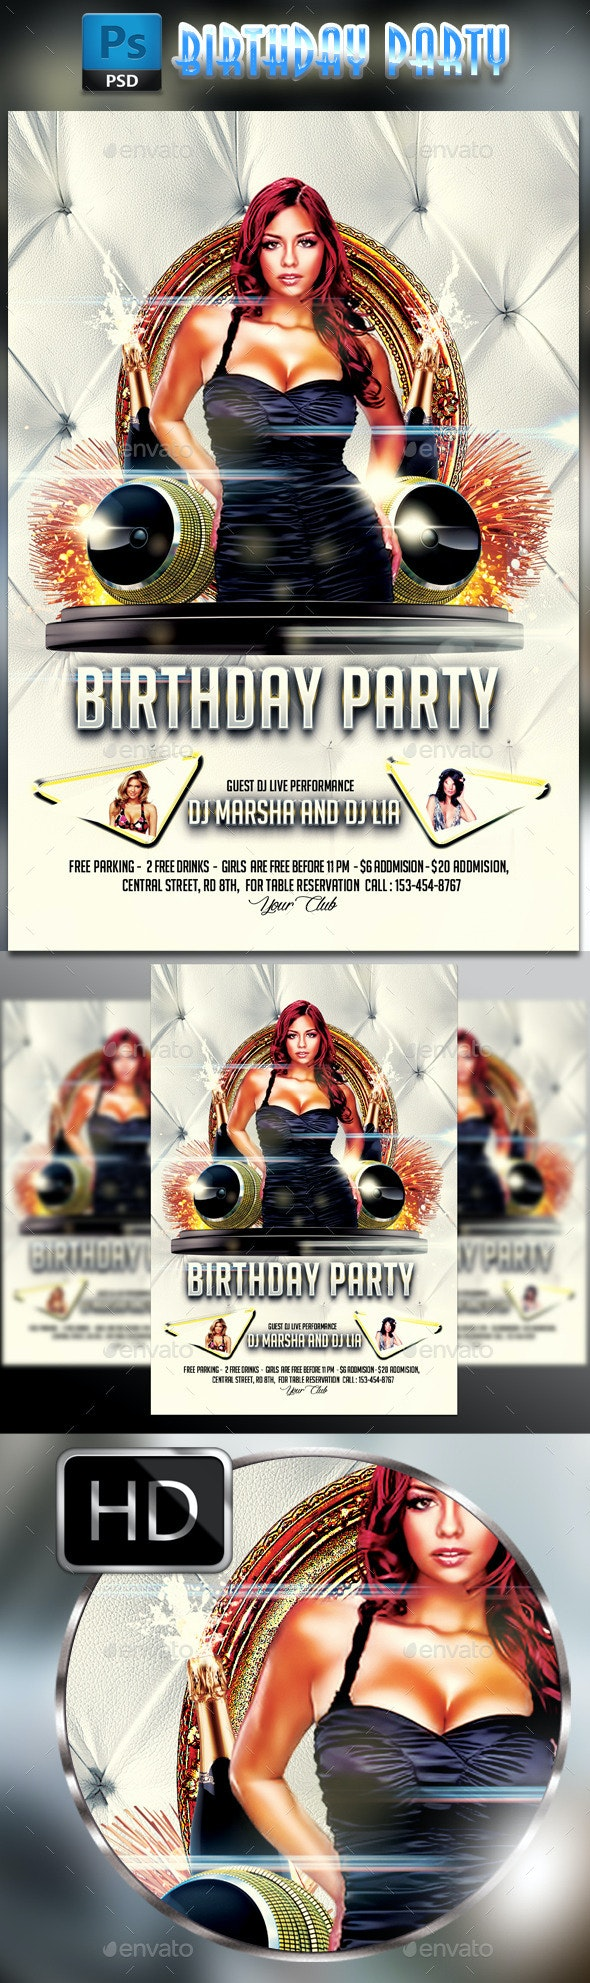 Birthday Party Flyer #2 - Clubs & Parties Events